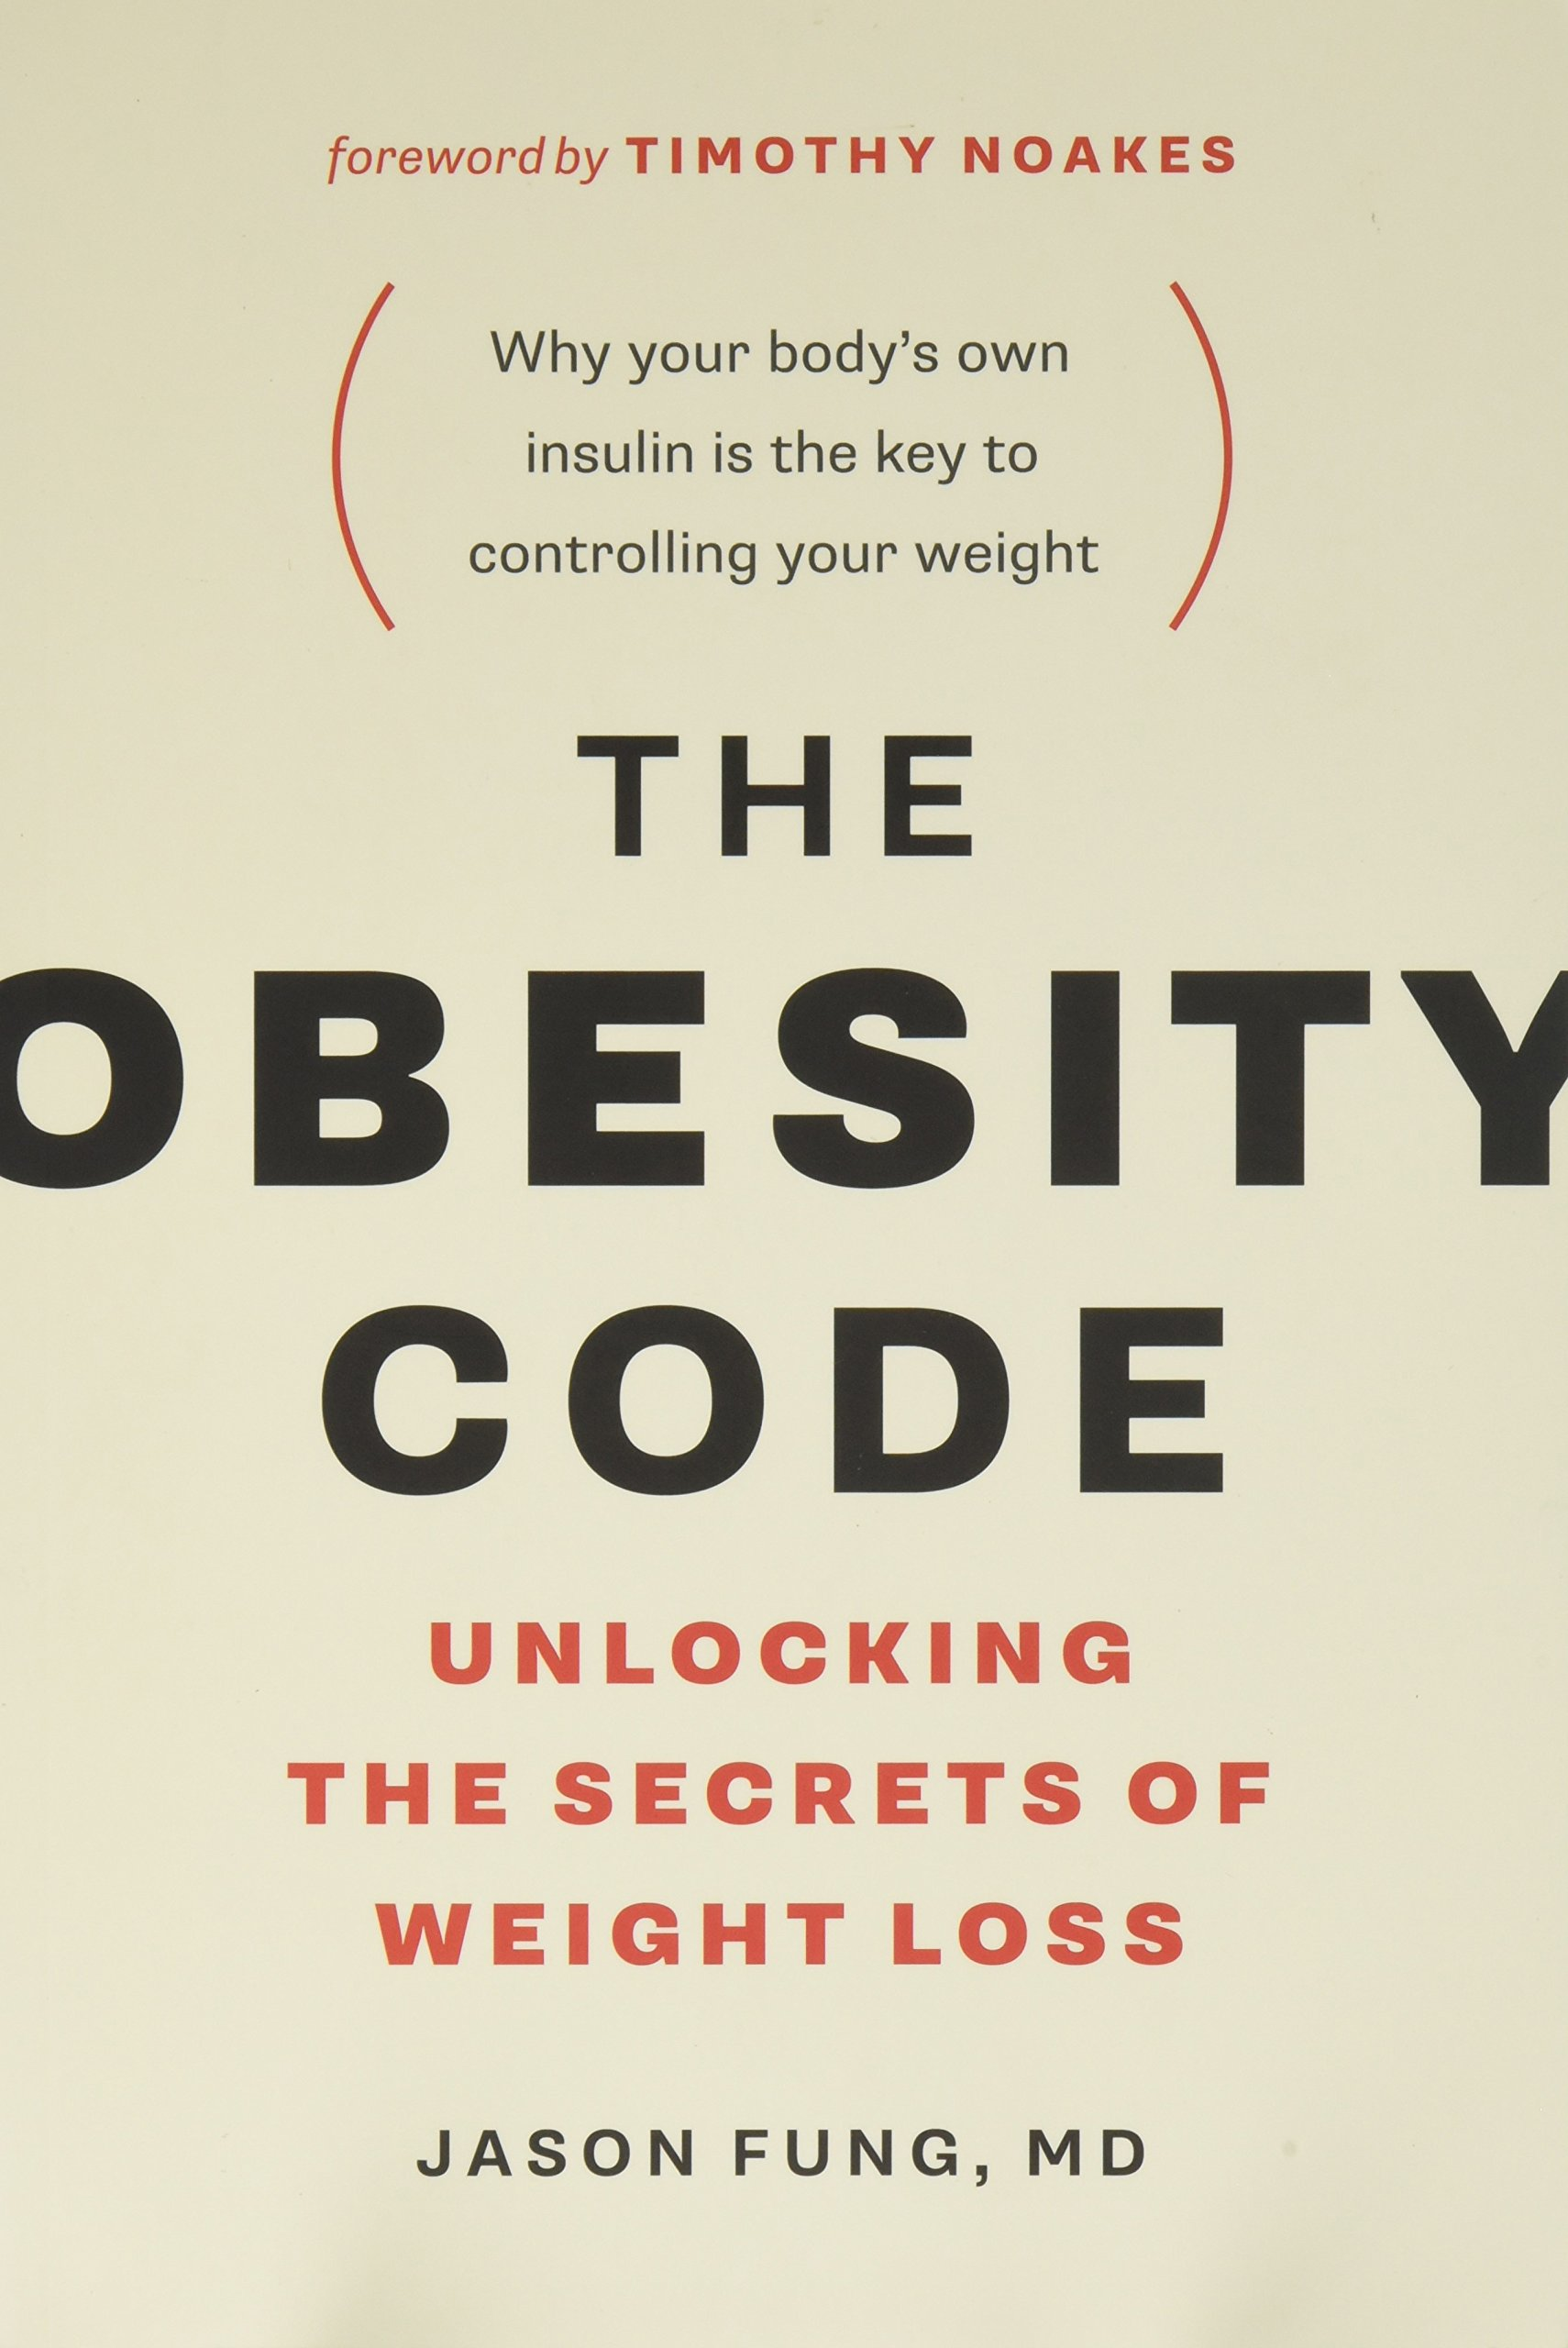 The obesity code unlocking the secrets of weight loss dr jason the obesity code unlocking the secrets of weight loss dr jason fung timothy noakes 9781771641258 amazon books fandeluxe